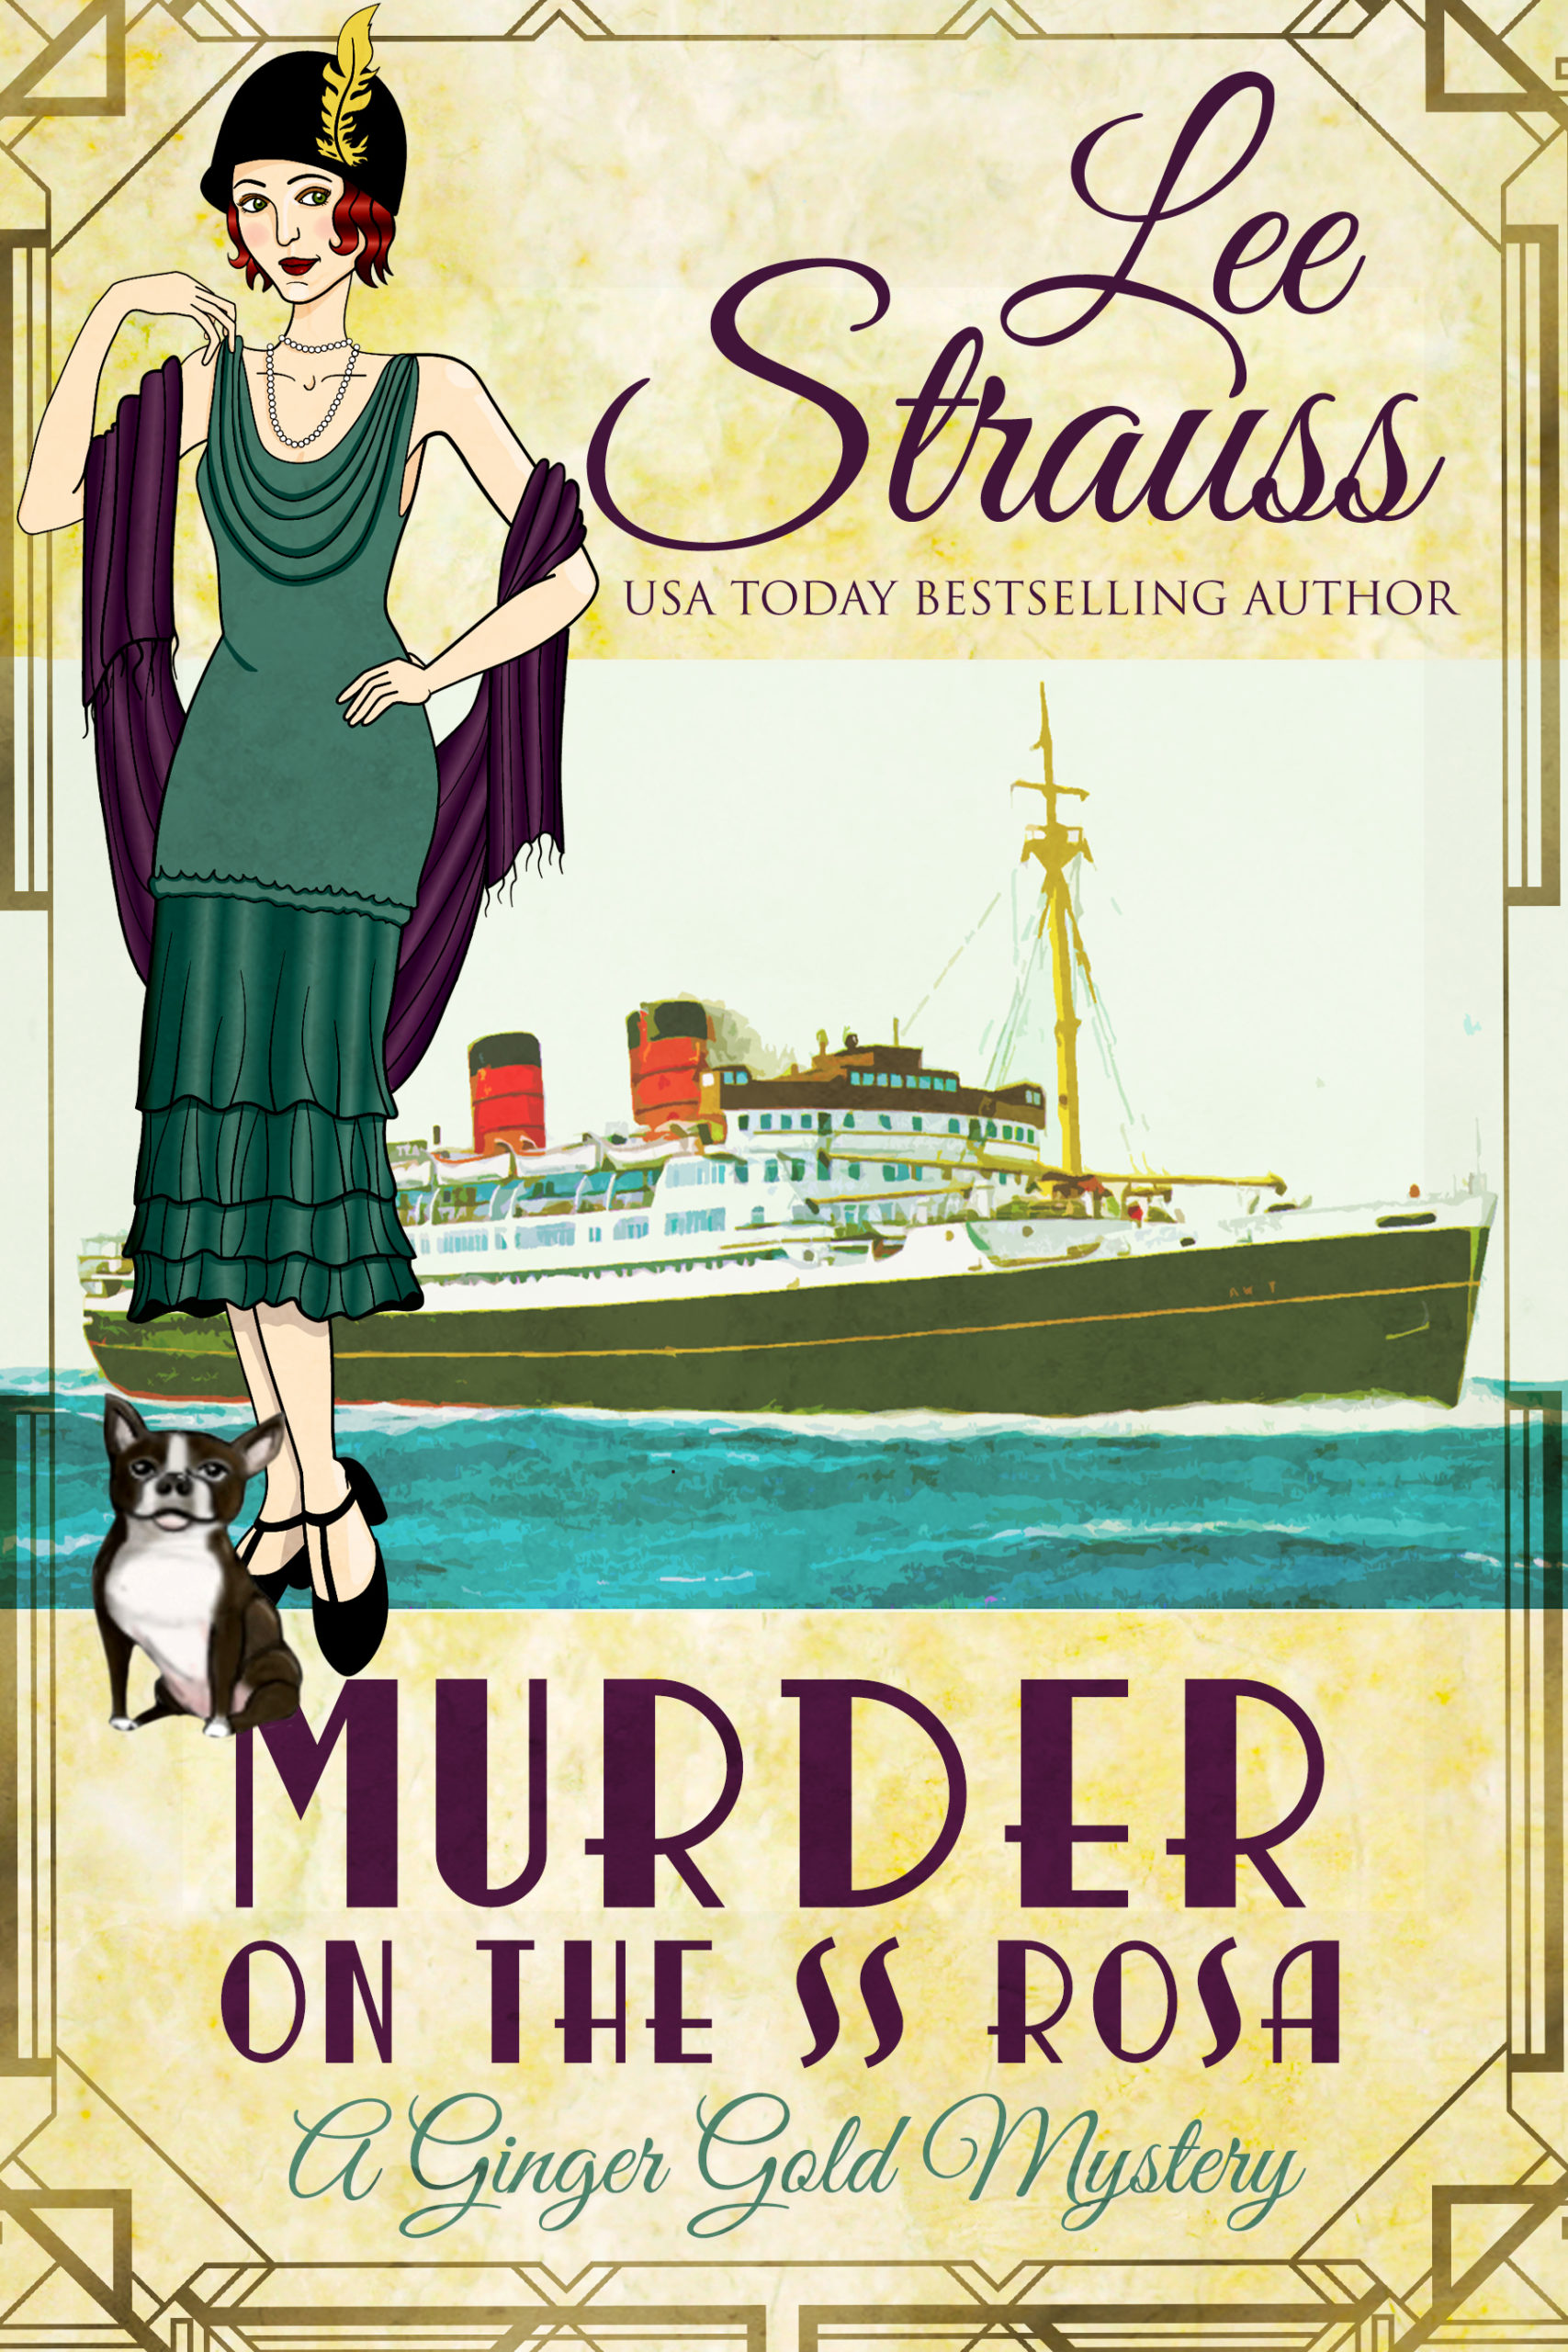 1920s cozy mystery historical fiction